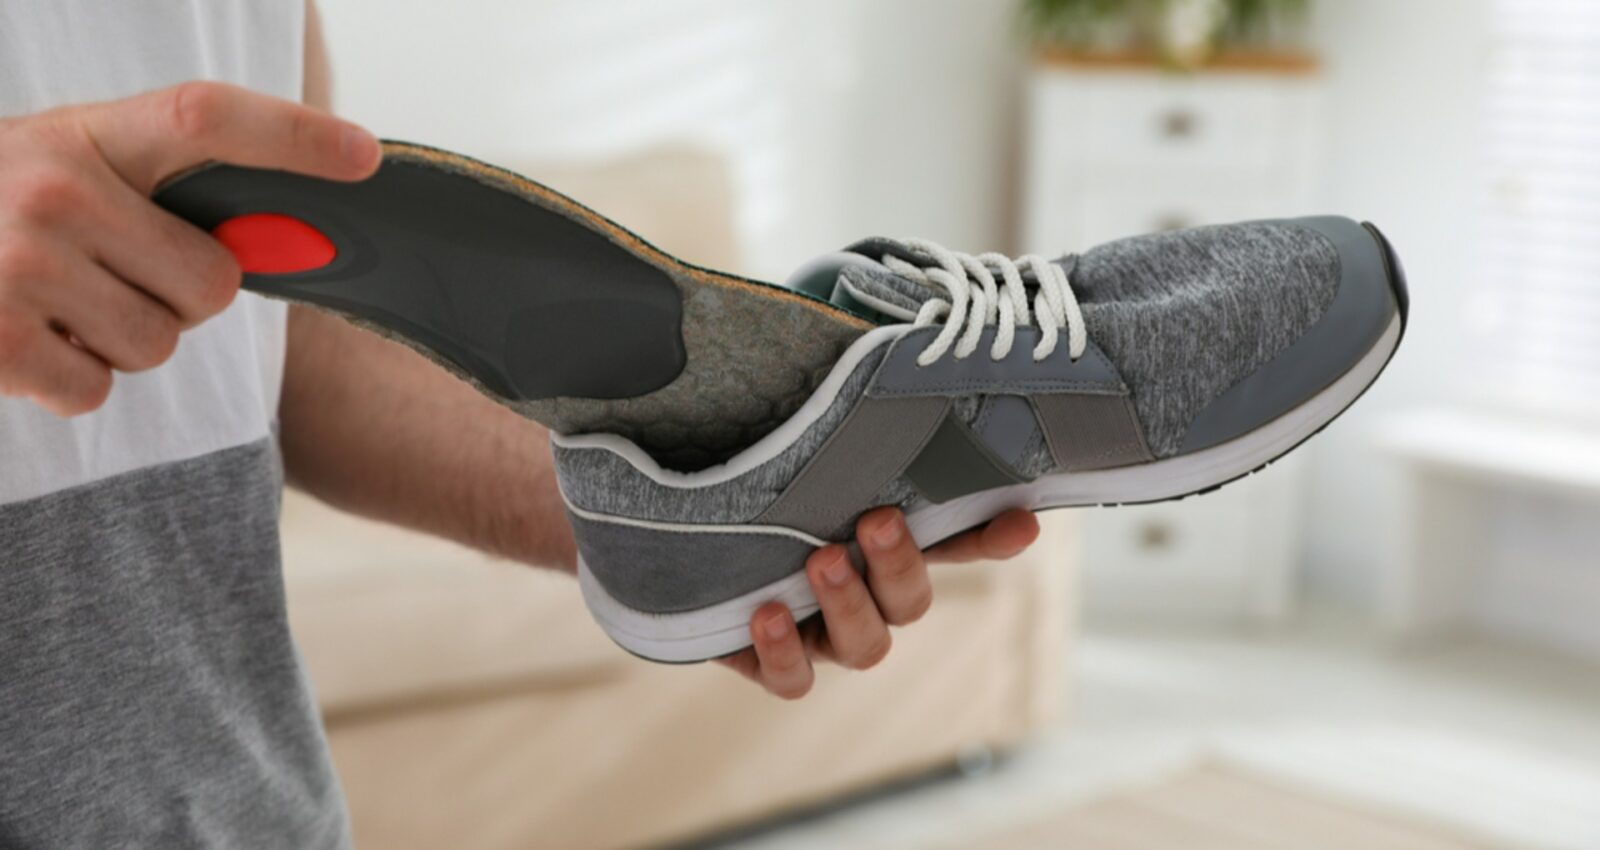 fves showing the concept of Orthotics